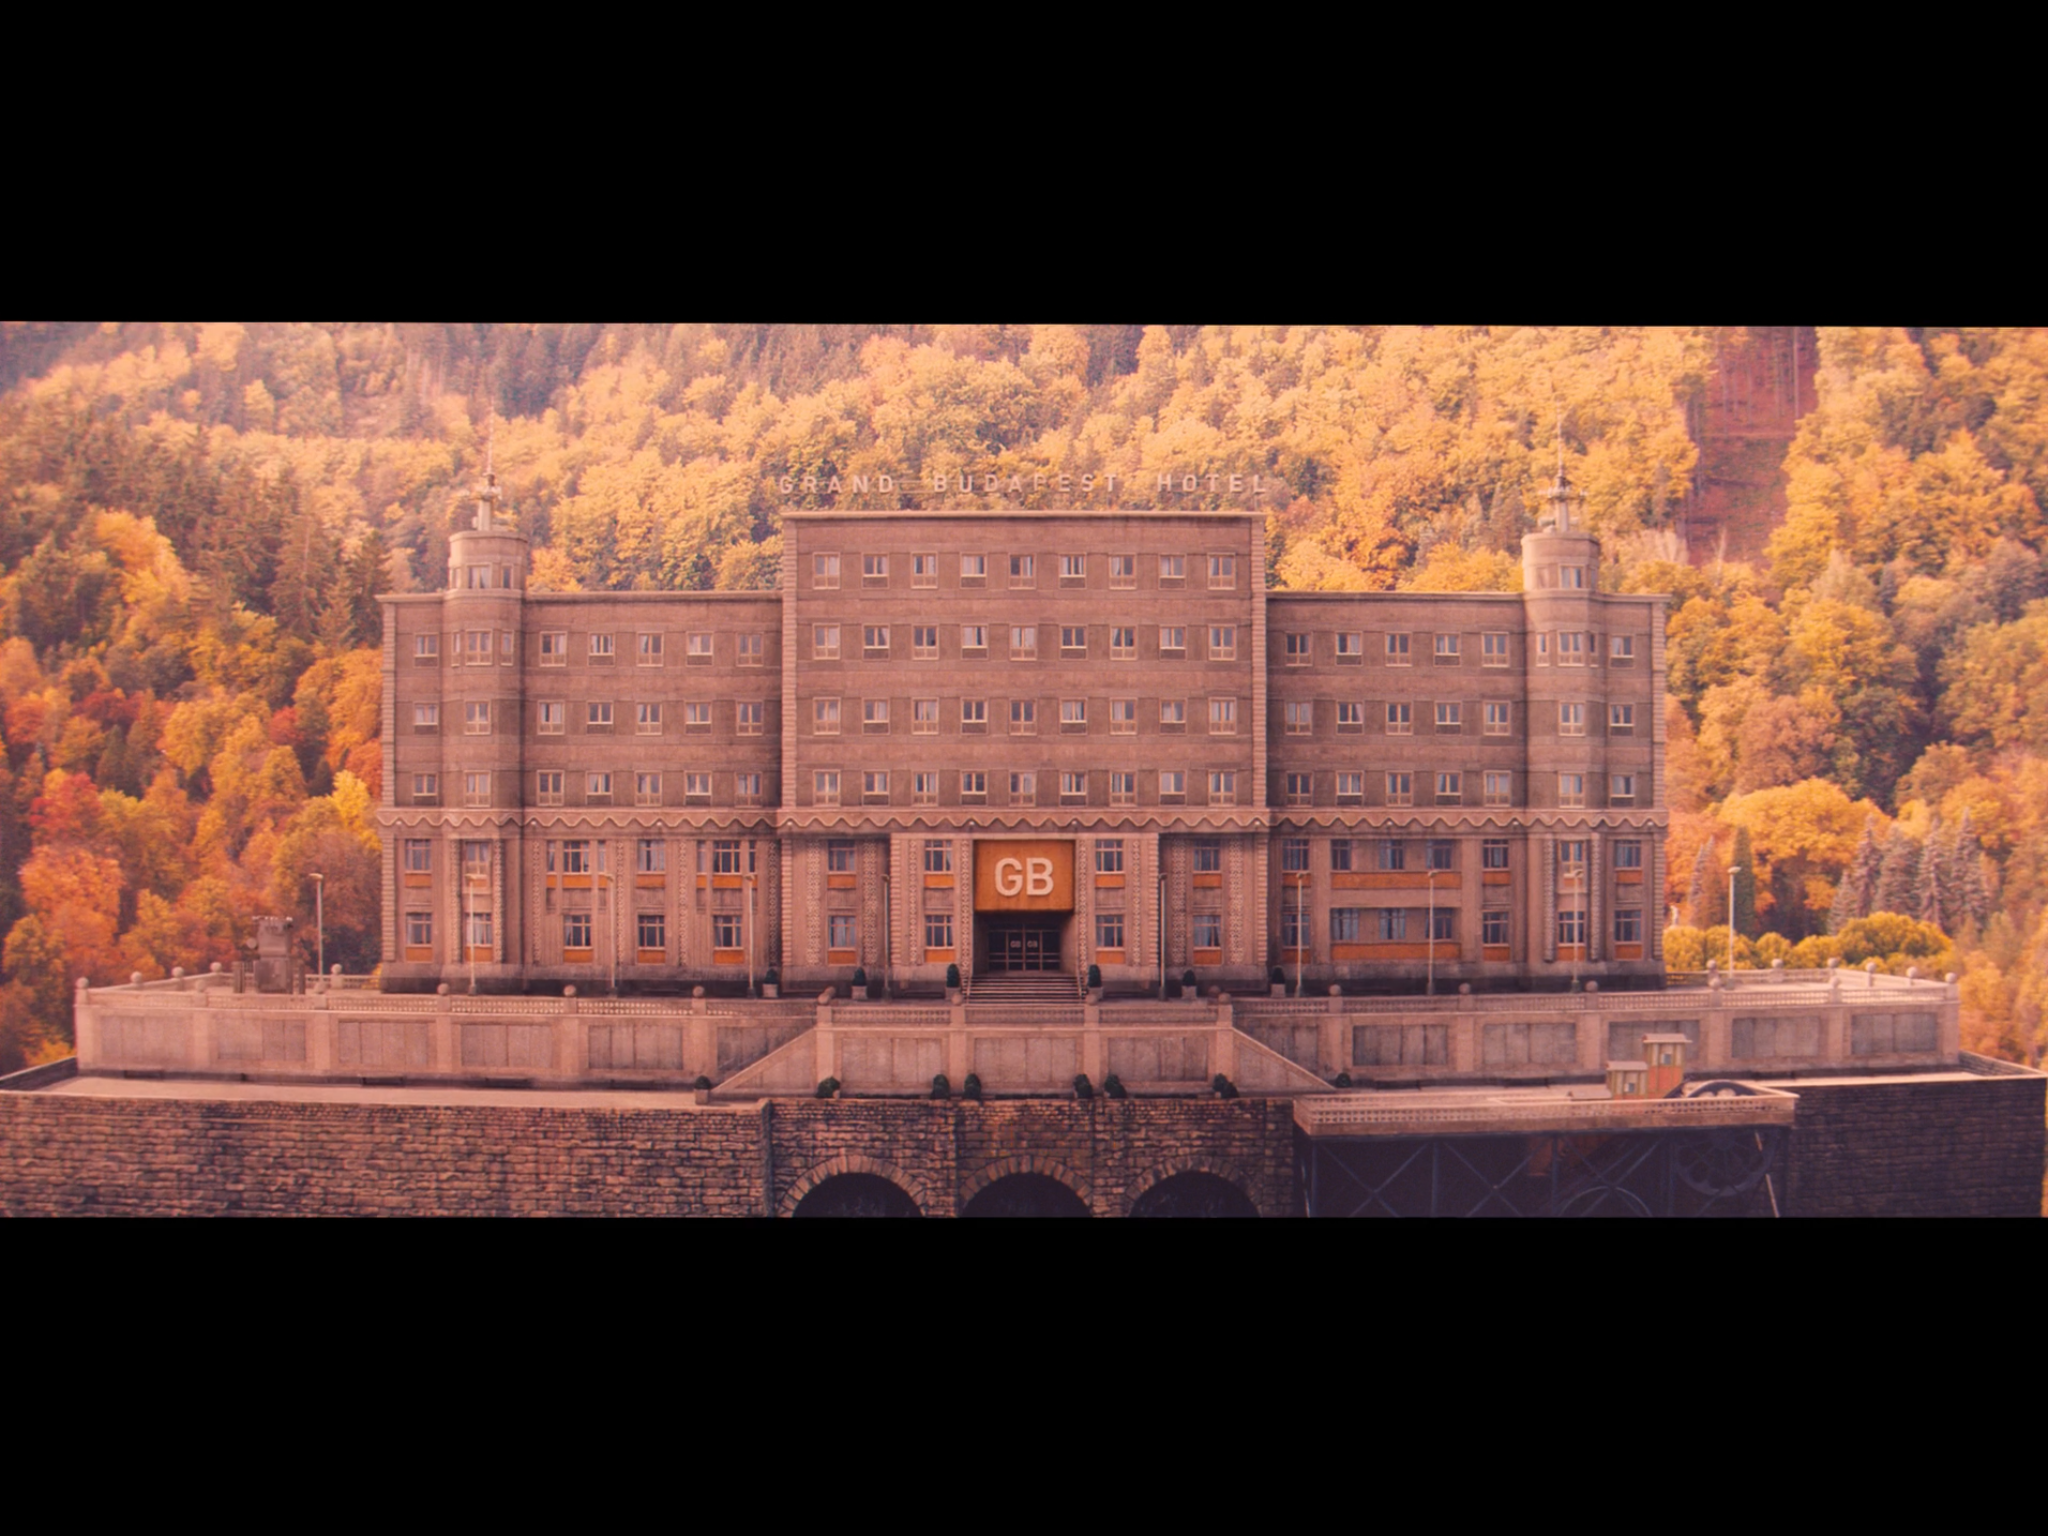 Screenshot from the movie of the miniature model of The Grand Budapest Hotel in the 1960's.